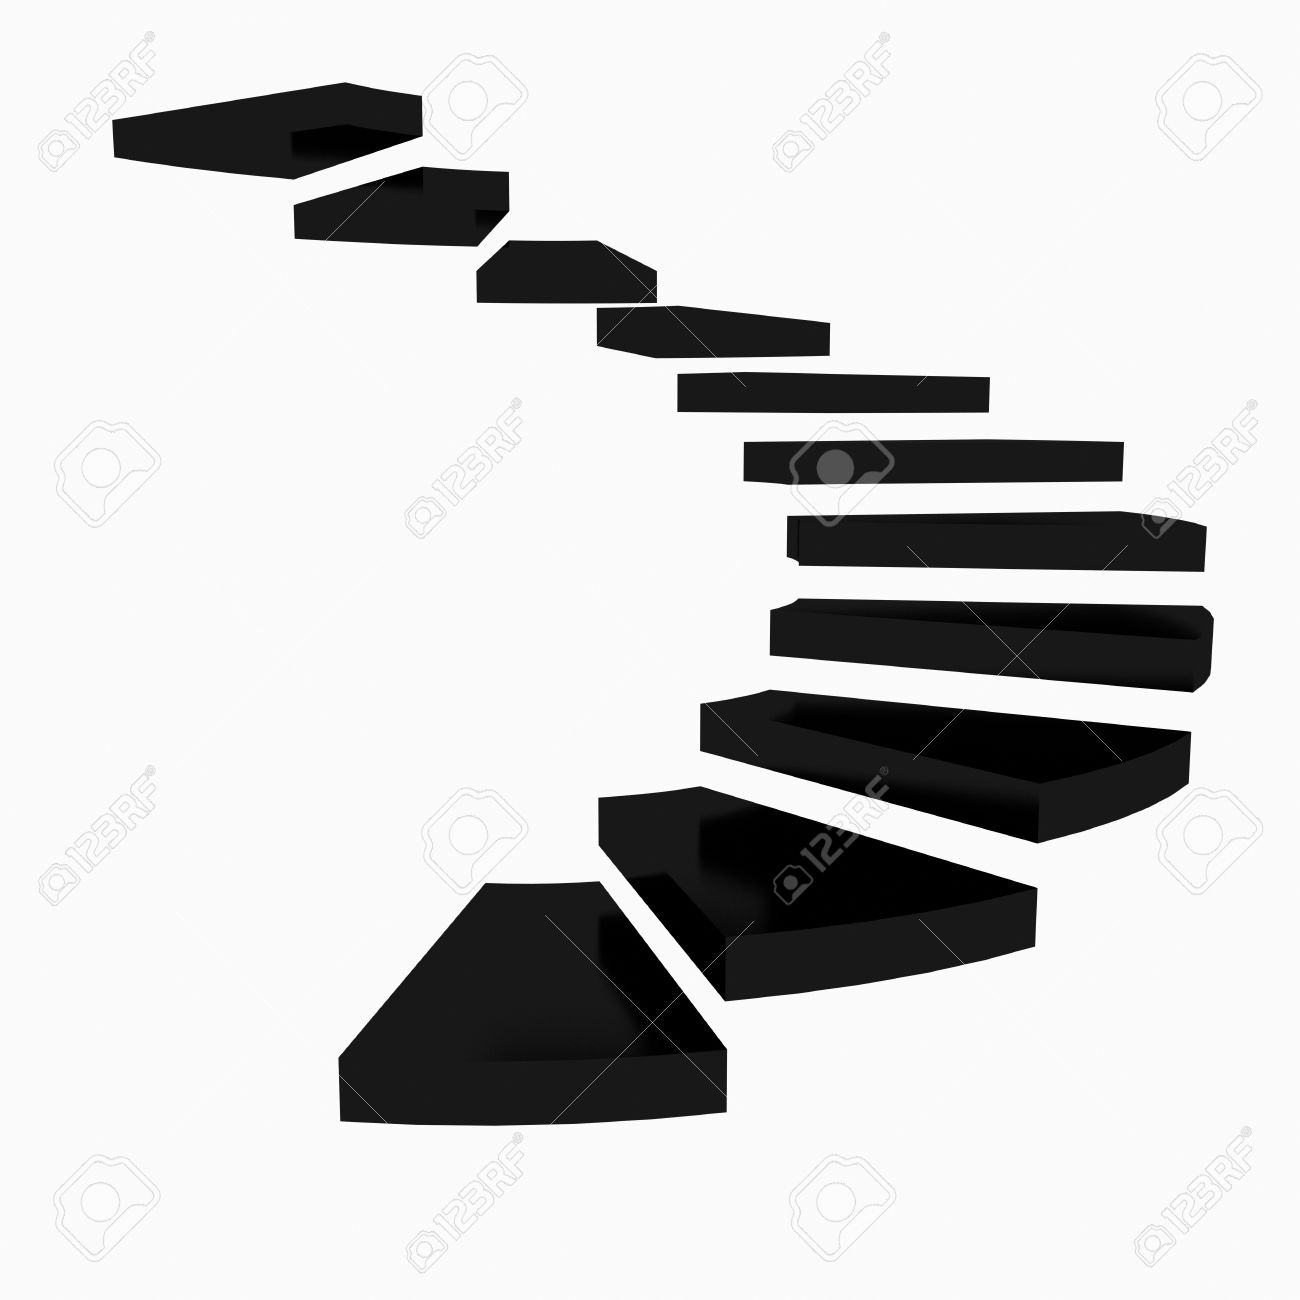 Staircase clipart winding staircase. Spiral portal